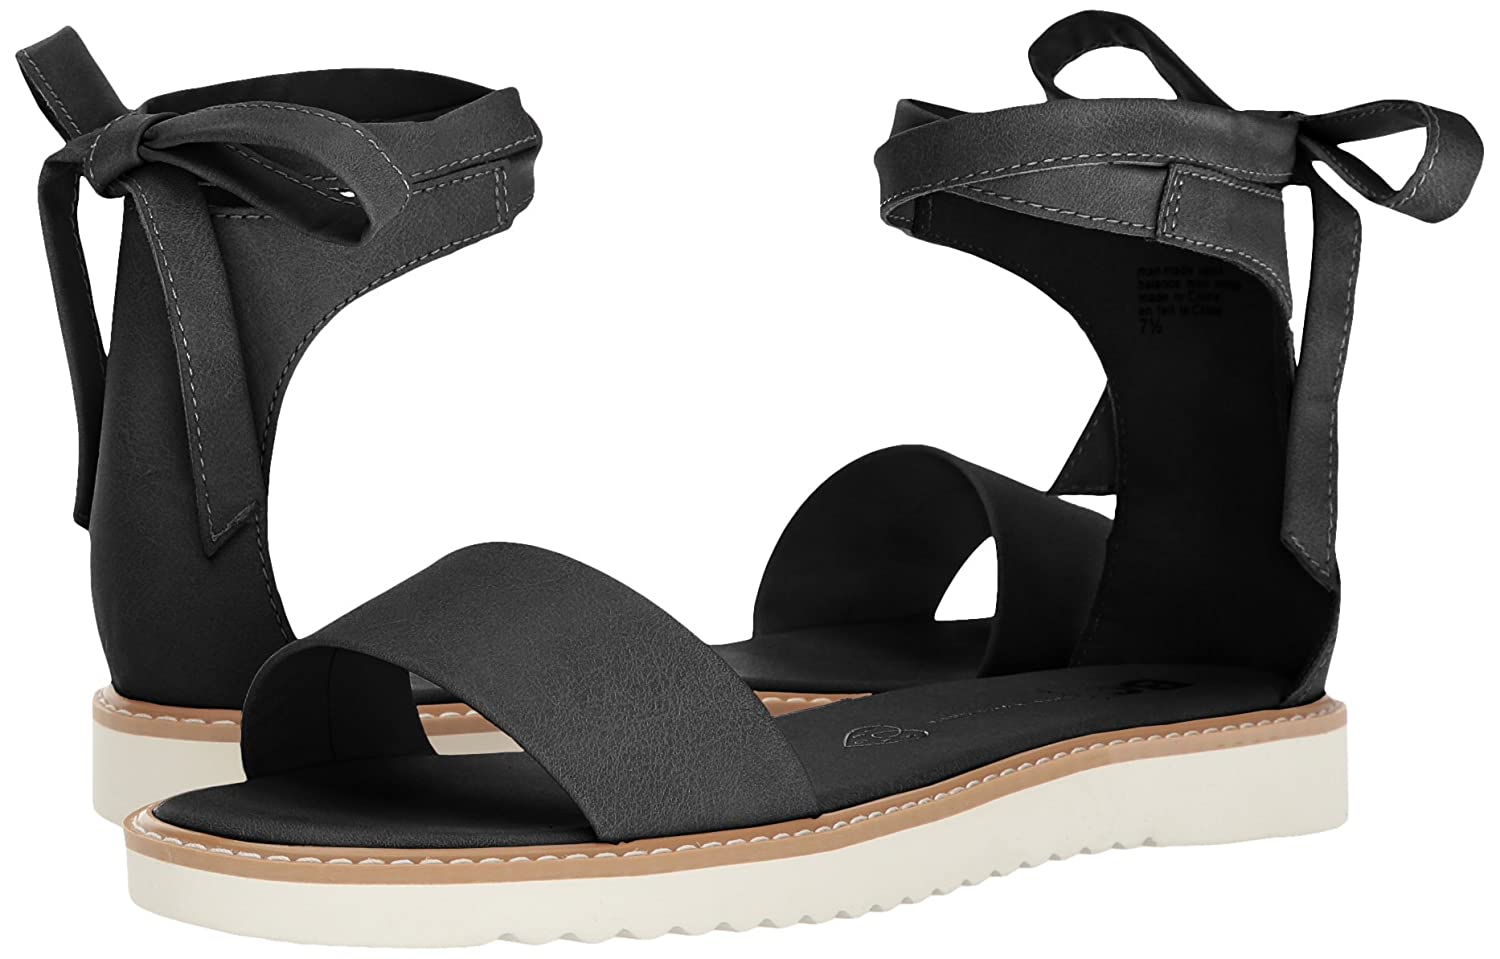 BC Footwear Women's Take Your Pick Dress Sandal B01N9CTN3A 7 B(M) US|Black